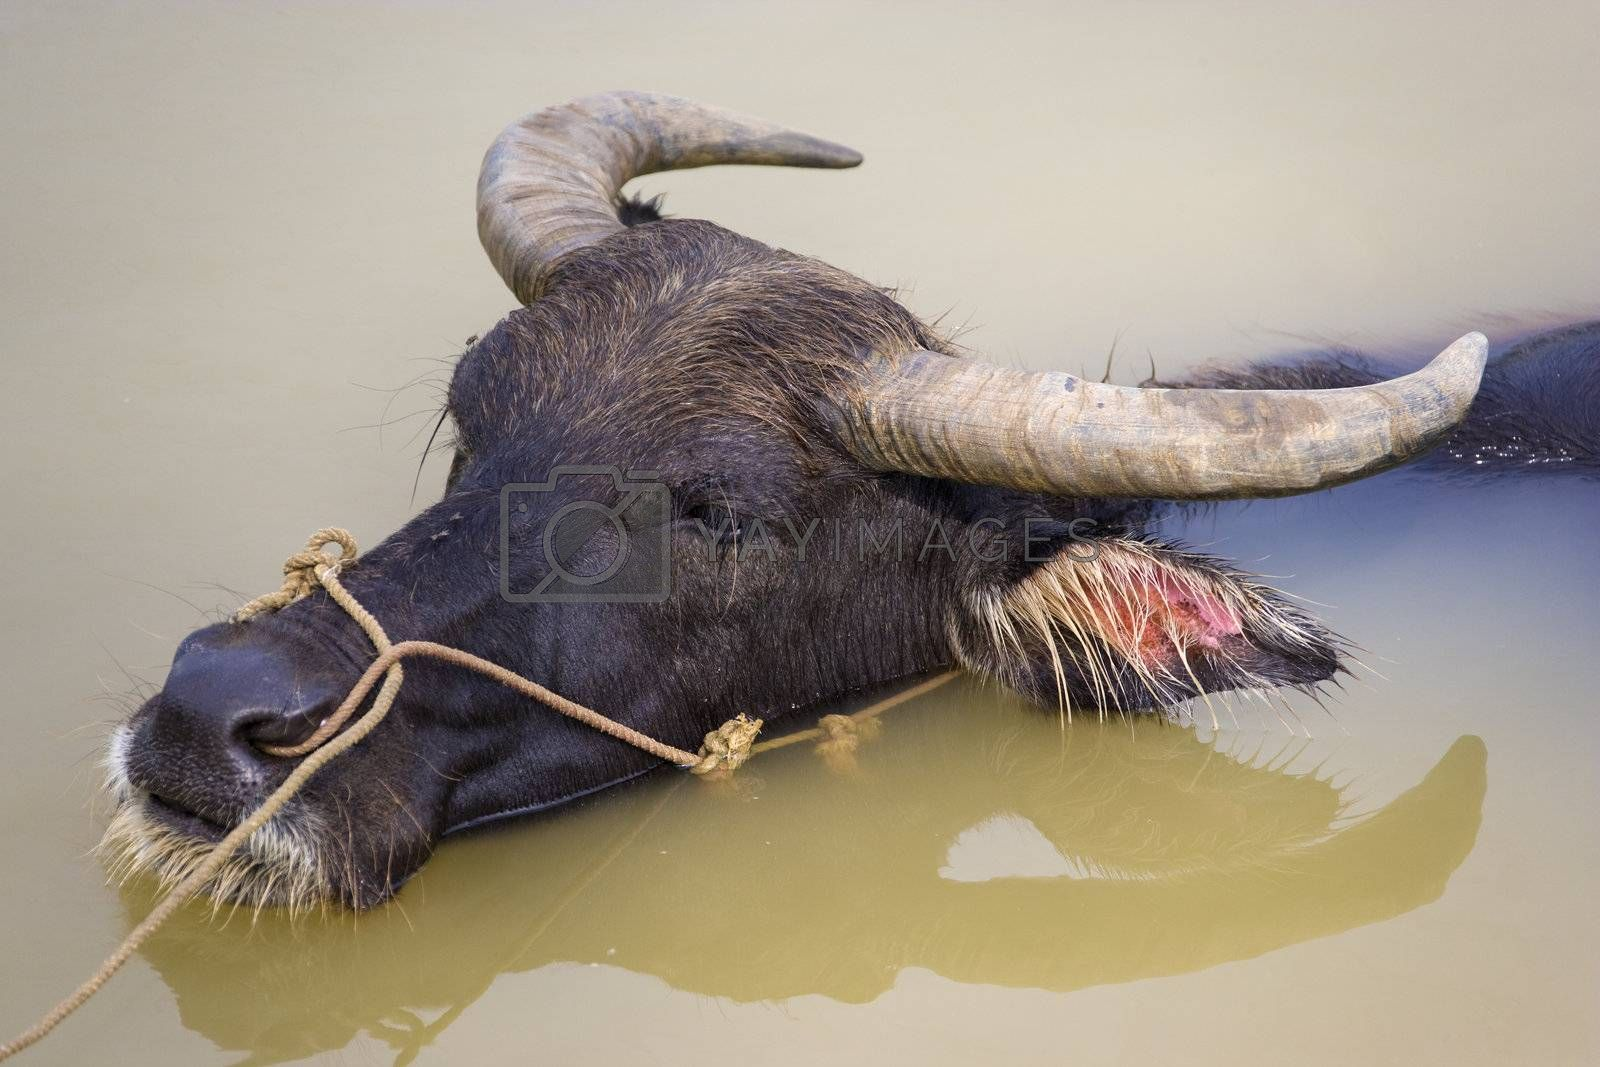 Image of a water buffalo at a farm located at Guilin, Guangxi Zhuang Autonomous Region, China.